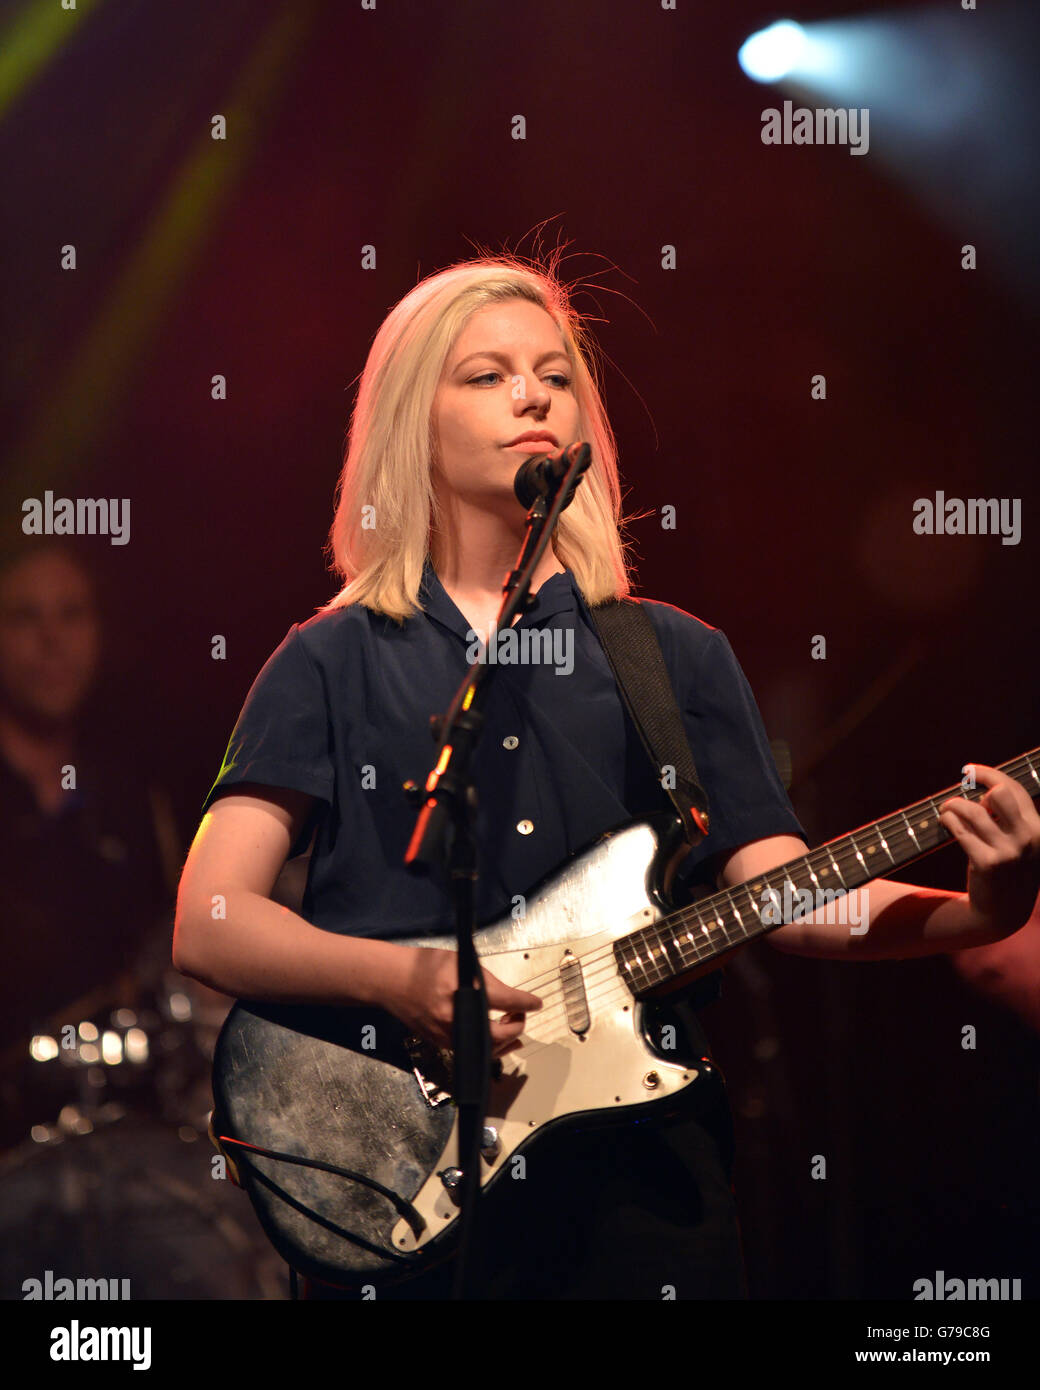 Ottawa, Canada - June 25, 2016:  Molly Rankin, lead singer of the indie pop band Alvvays that topped the US college - Stock Image